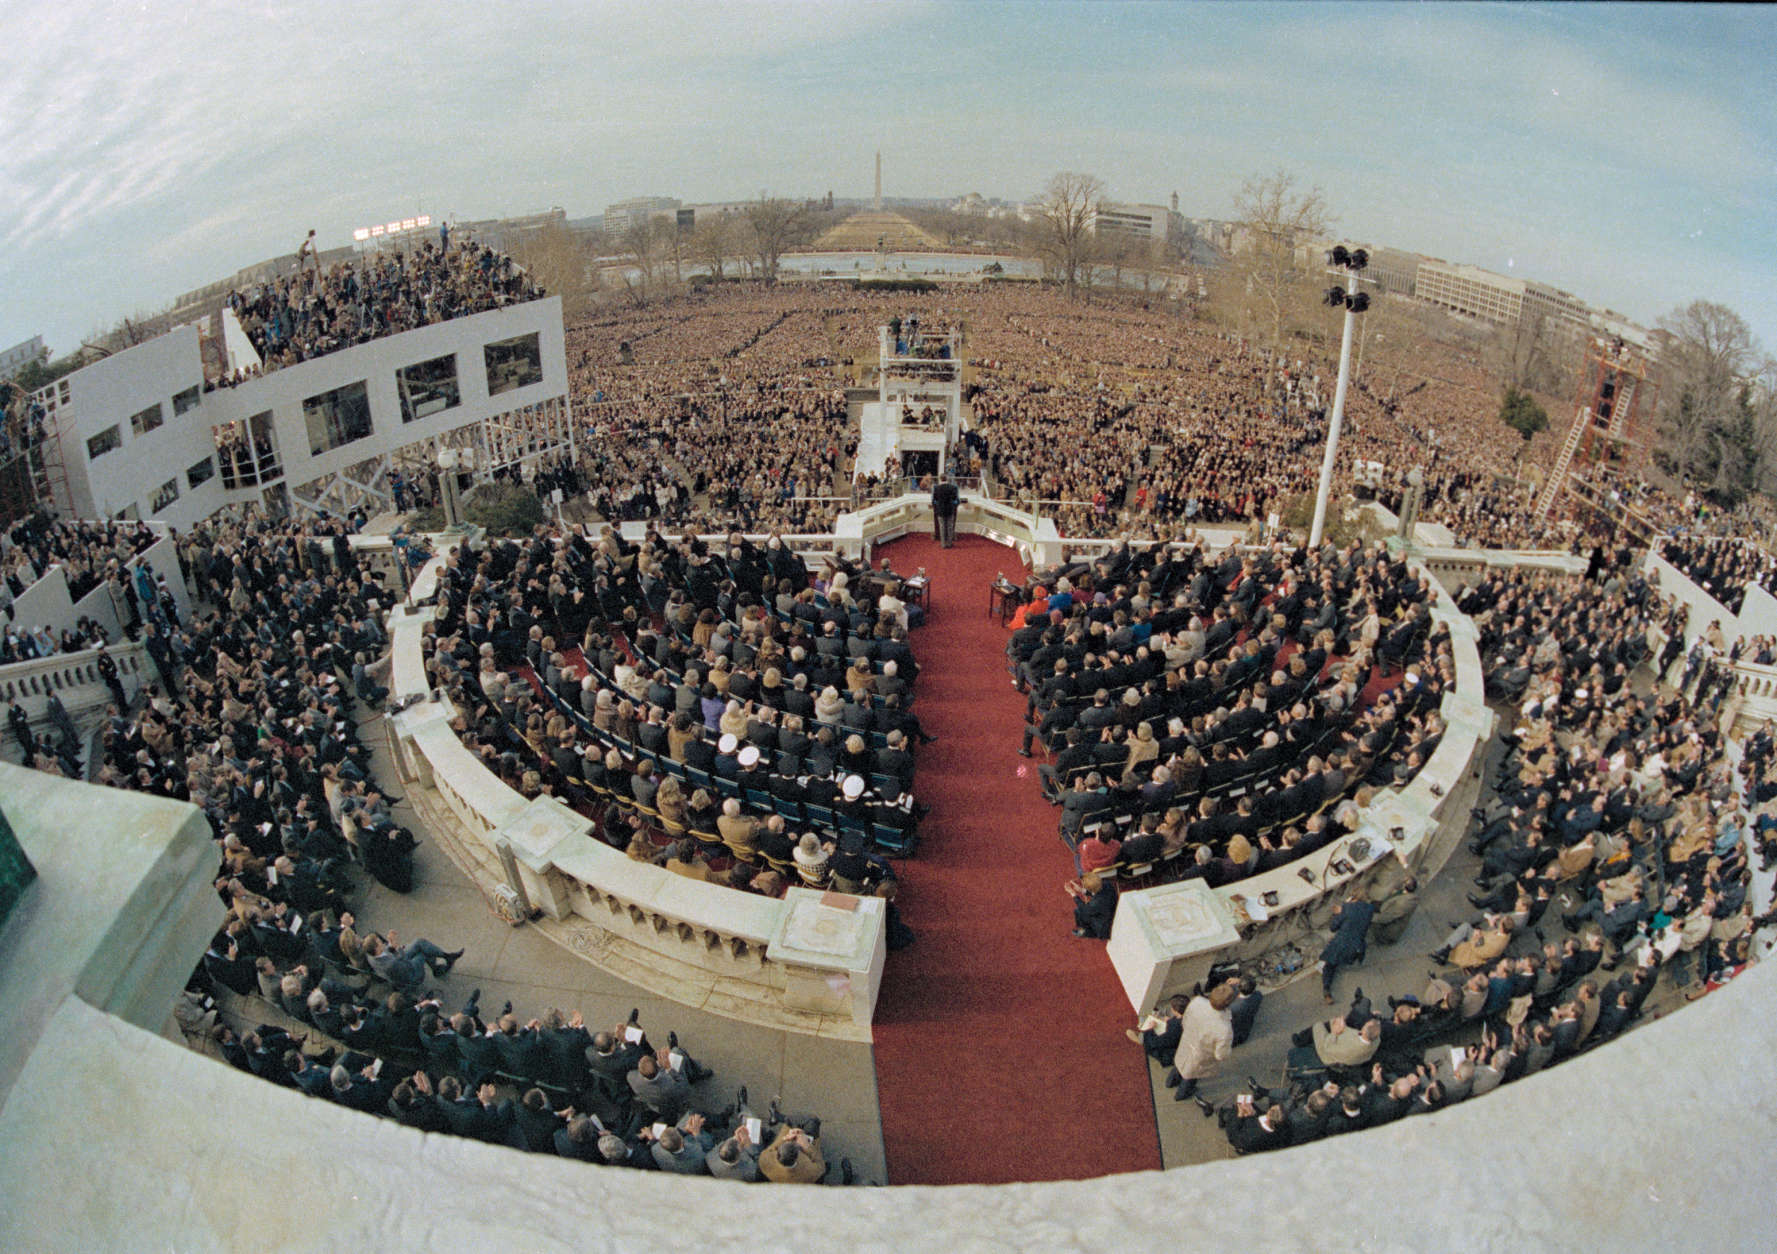 ** FILE ** In this Jan. 20, 1981 file photo, shows a wide angle view from the Capitol balcony as President Ronald Reagan, visible at center, addresses the nation following his swearing-in ceremony in Washington.  President-elect Barack Obama's inauguration is expected to draw 1 million-plus to the capital, and already some lawmakers have stopped taking ticket requests and hotels have booked up.  (AP Photo, File)